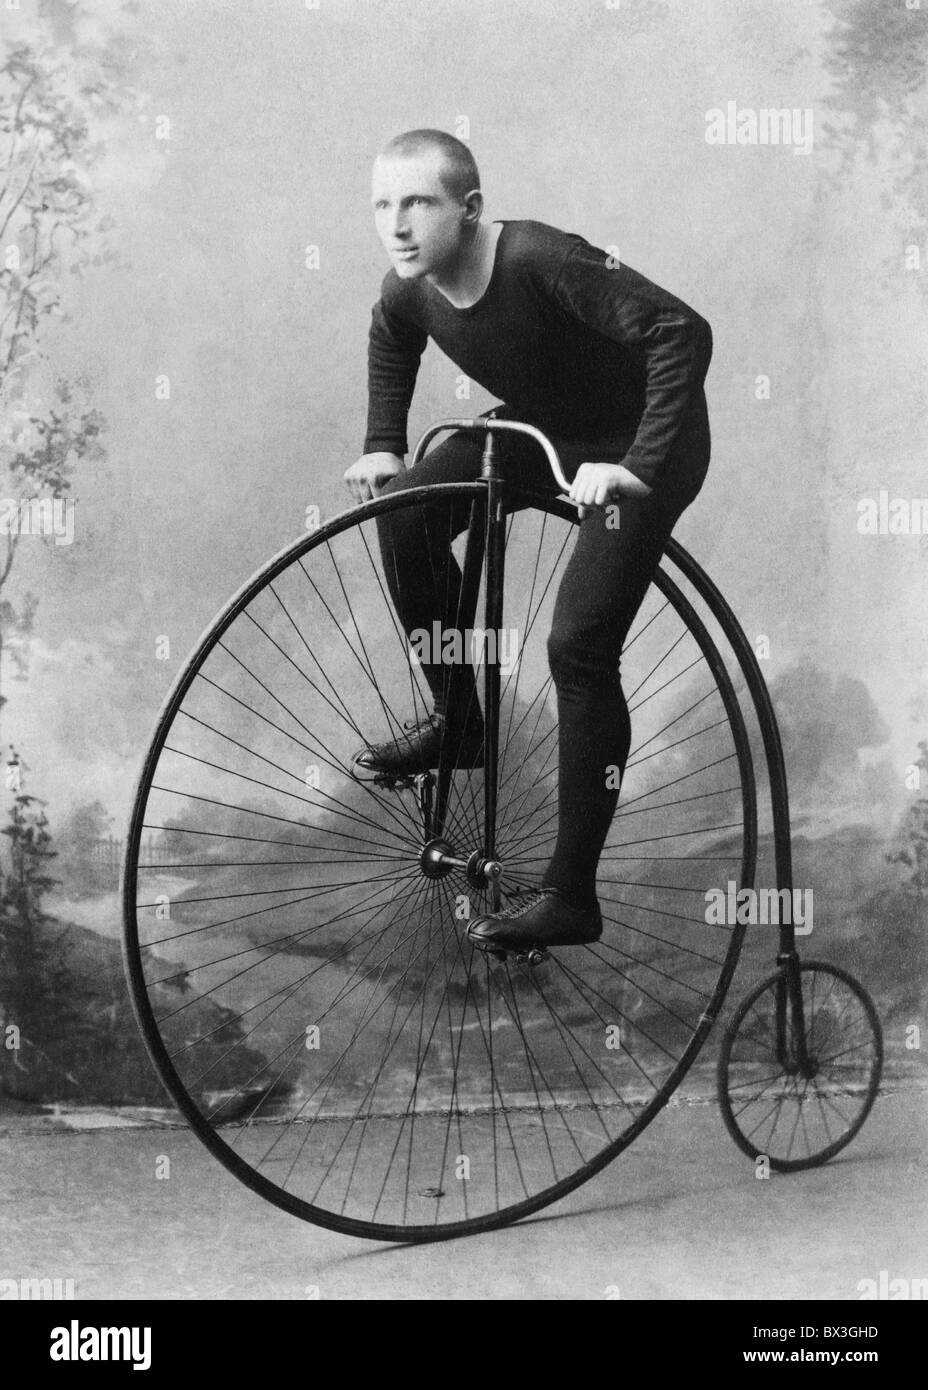 Vintage photo portrait circa 1891 de World champion cycliste William Walker Martin sur un penny farthing-vélo. Photo Stock